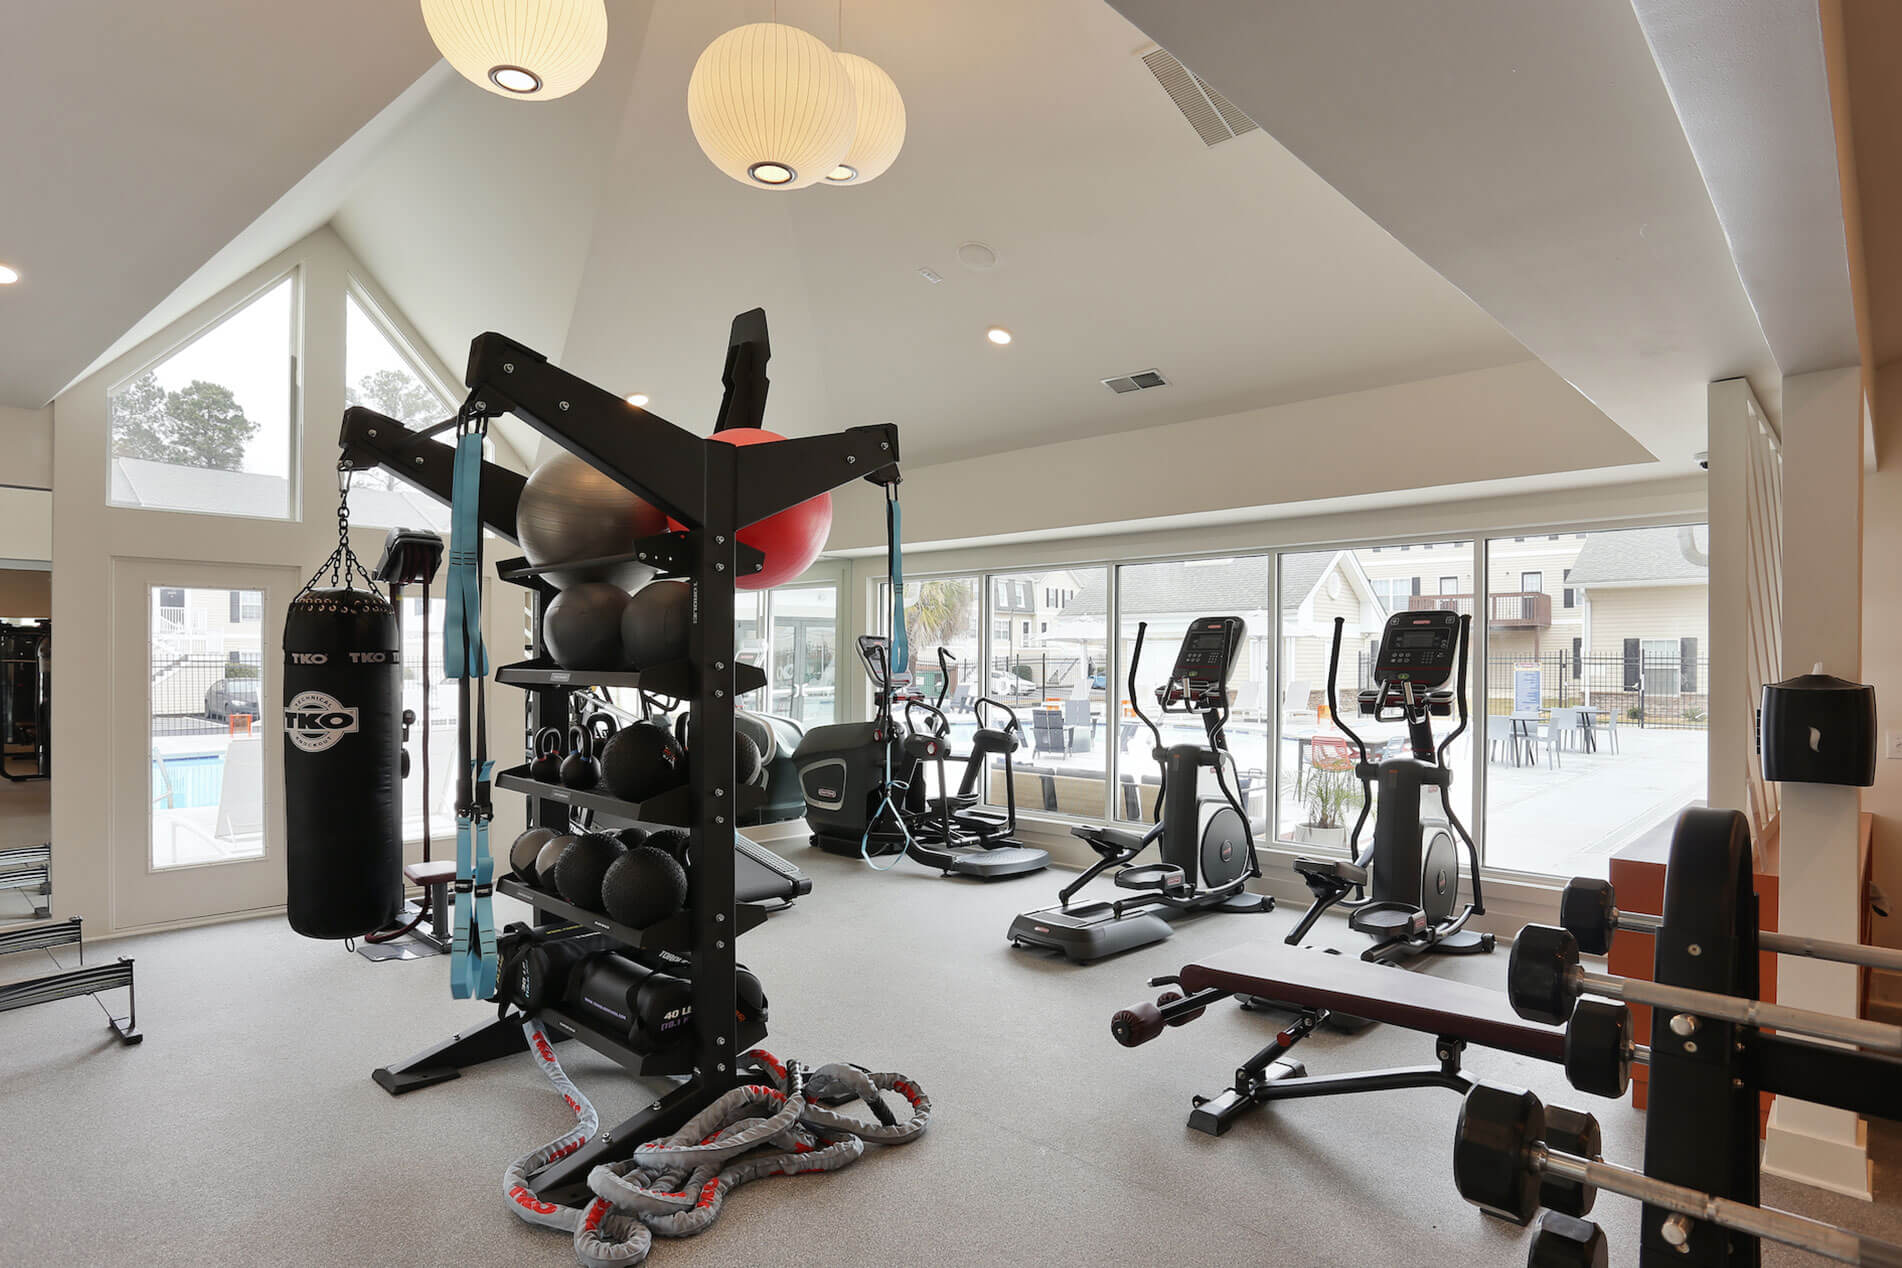 Gym with Exercise Equipment at The Rowan Apartments